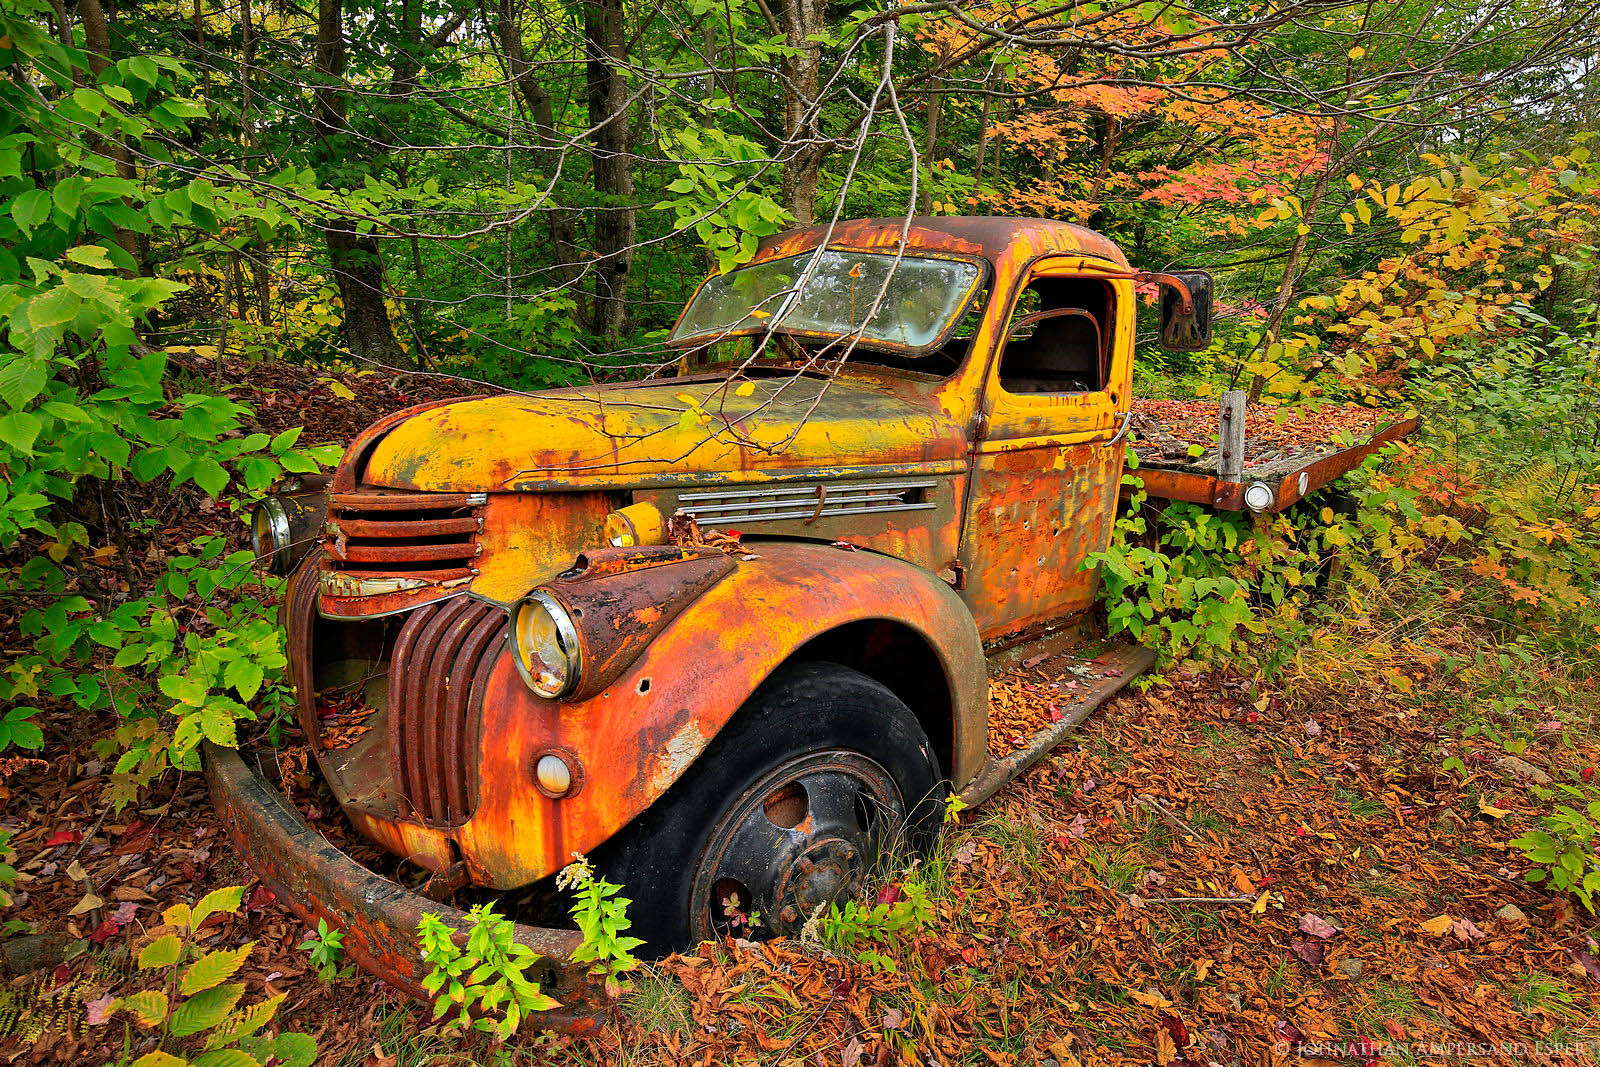 Essex Chain of Lakes,rusty truck,old truck,forest,truck,abandoned, photo